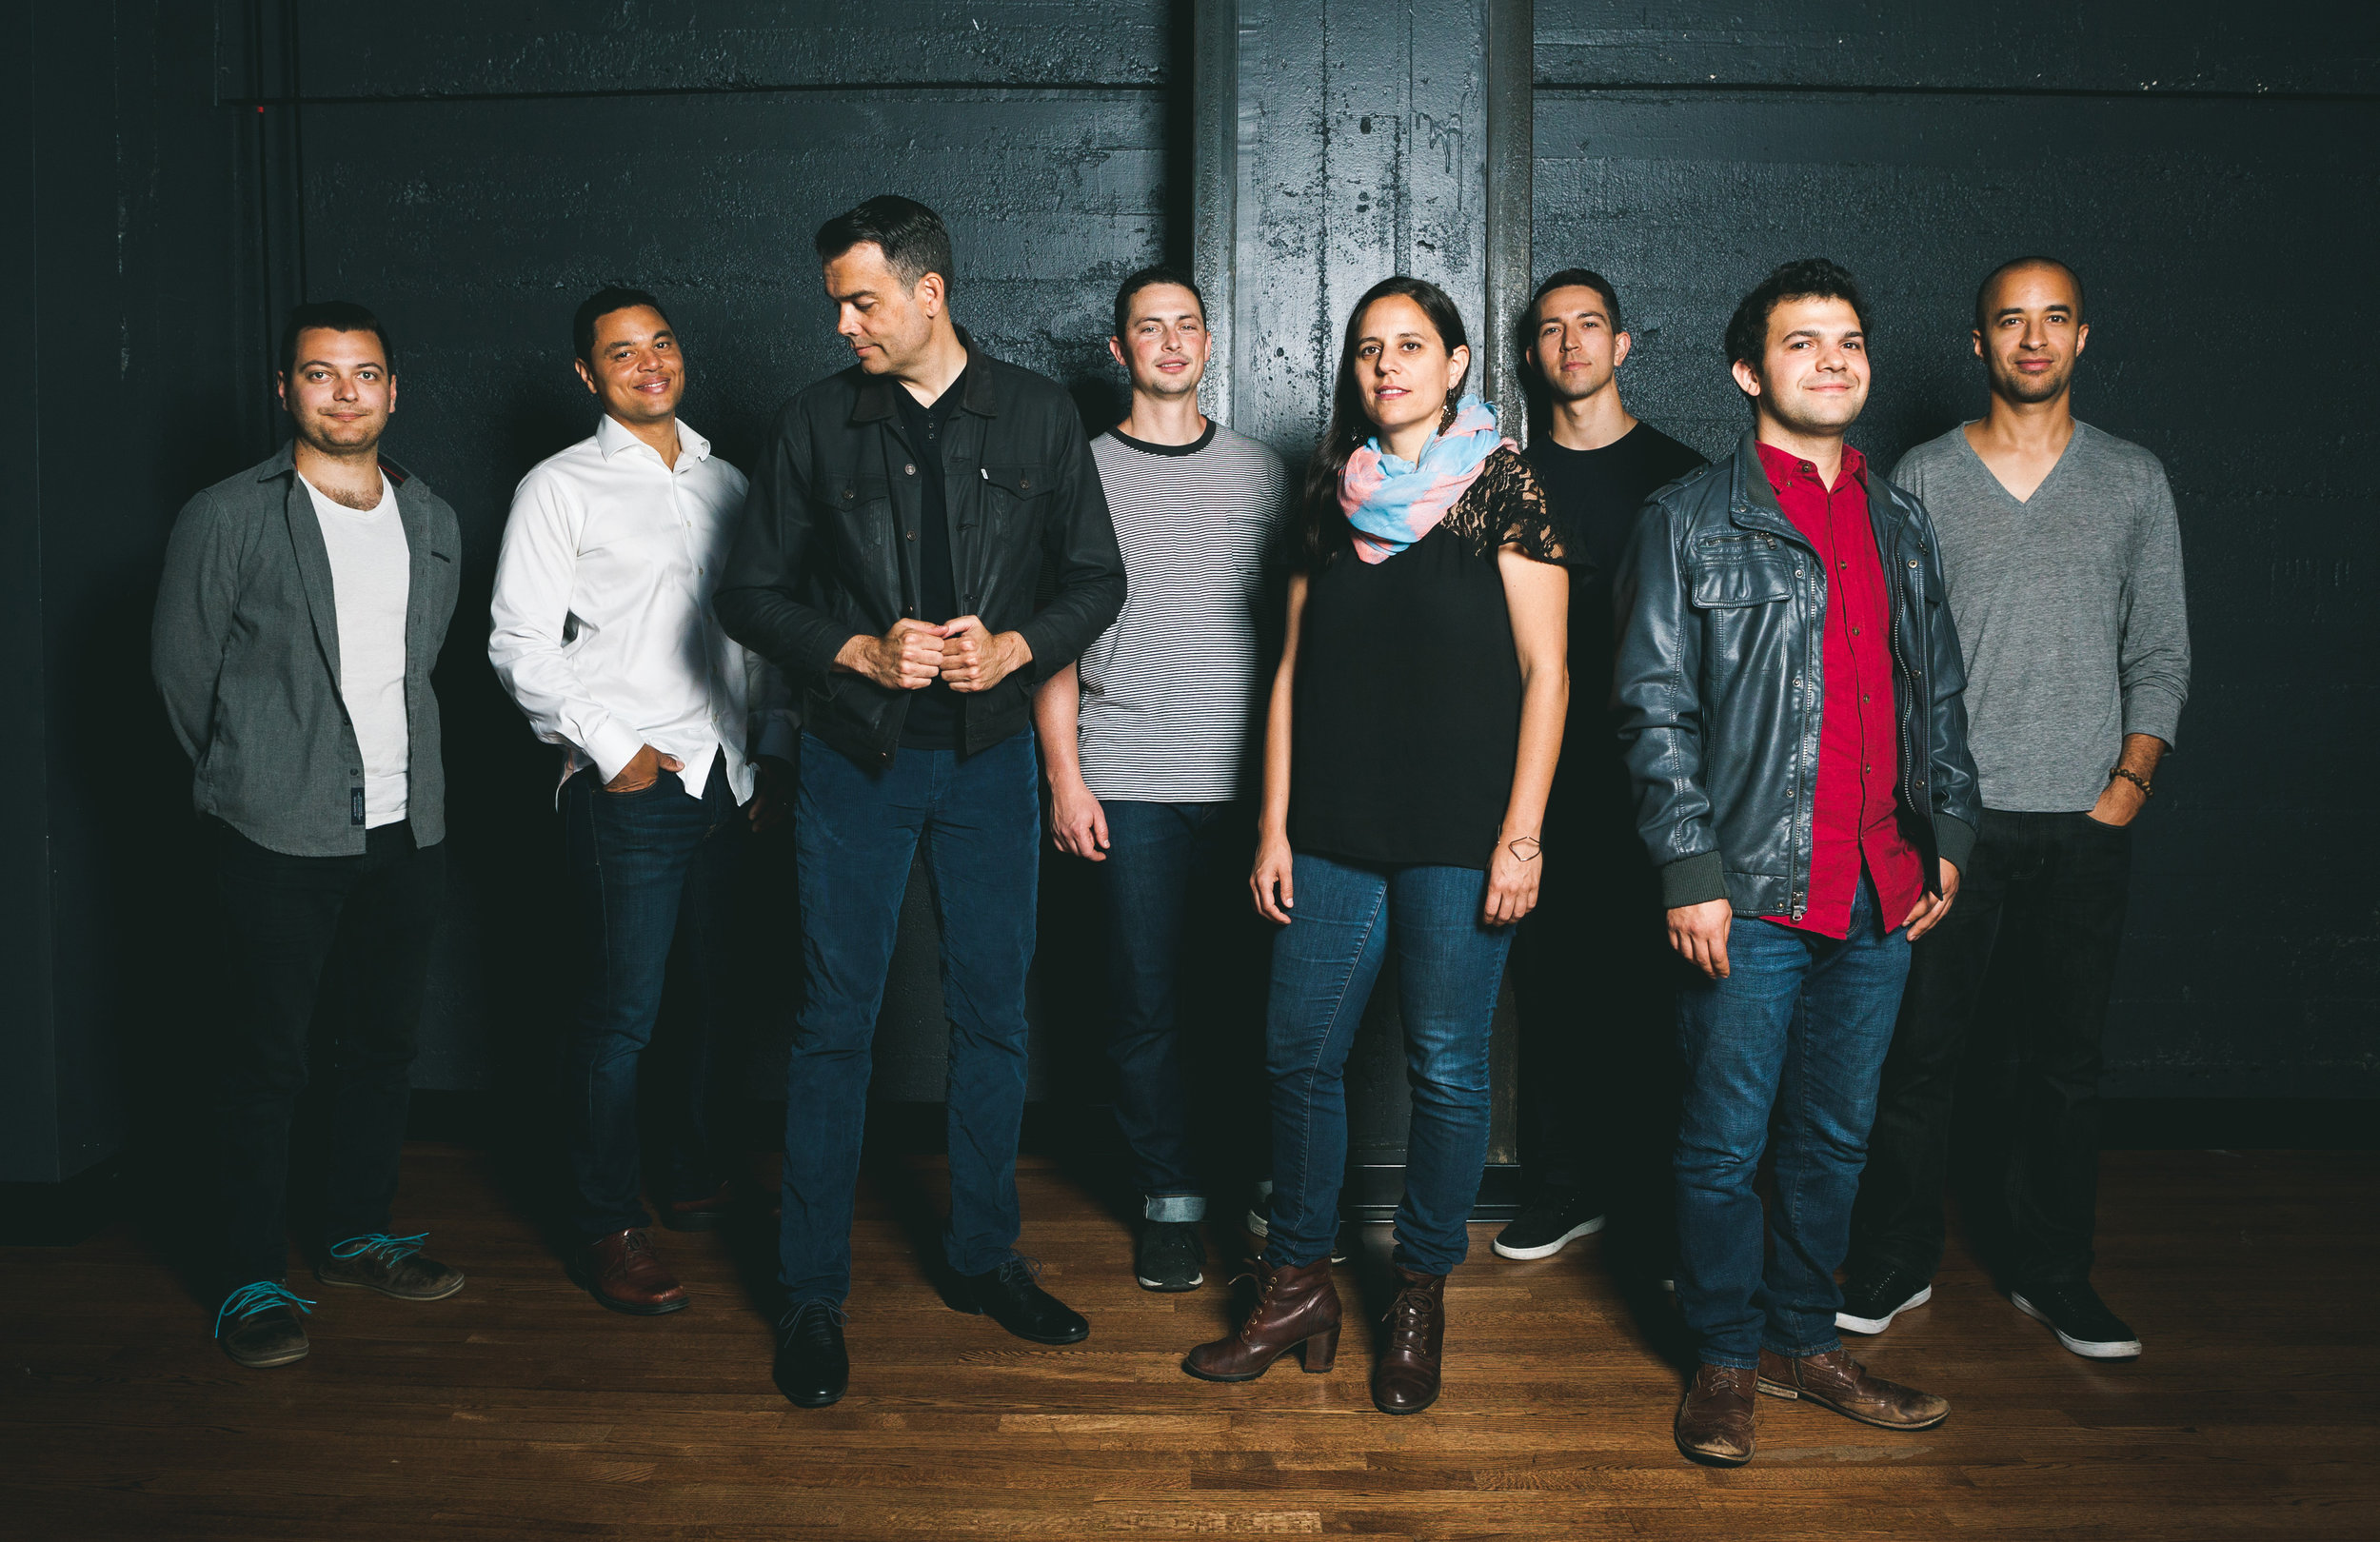 Negative Press Project  - L-R: Luis Salcedo (Guitar), Lyle Link (Soprano/Alto/Tenor Sax), Andrew Lion (Bass), Rafa Postel (Trumpet), Ruthie Dineen (Piano/Keys), Chris Sullivan (Alto Sax), Isaac Schwartz (Drums), Tony Peebles (Tenor Sax) -  Click pic to access Hi Res Photo for Download from DropBox